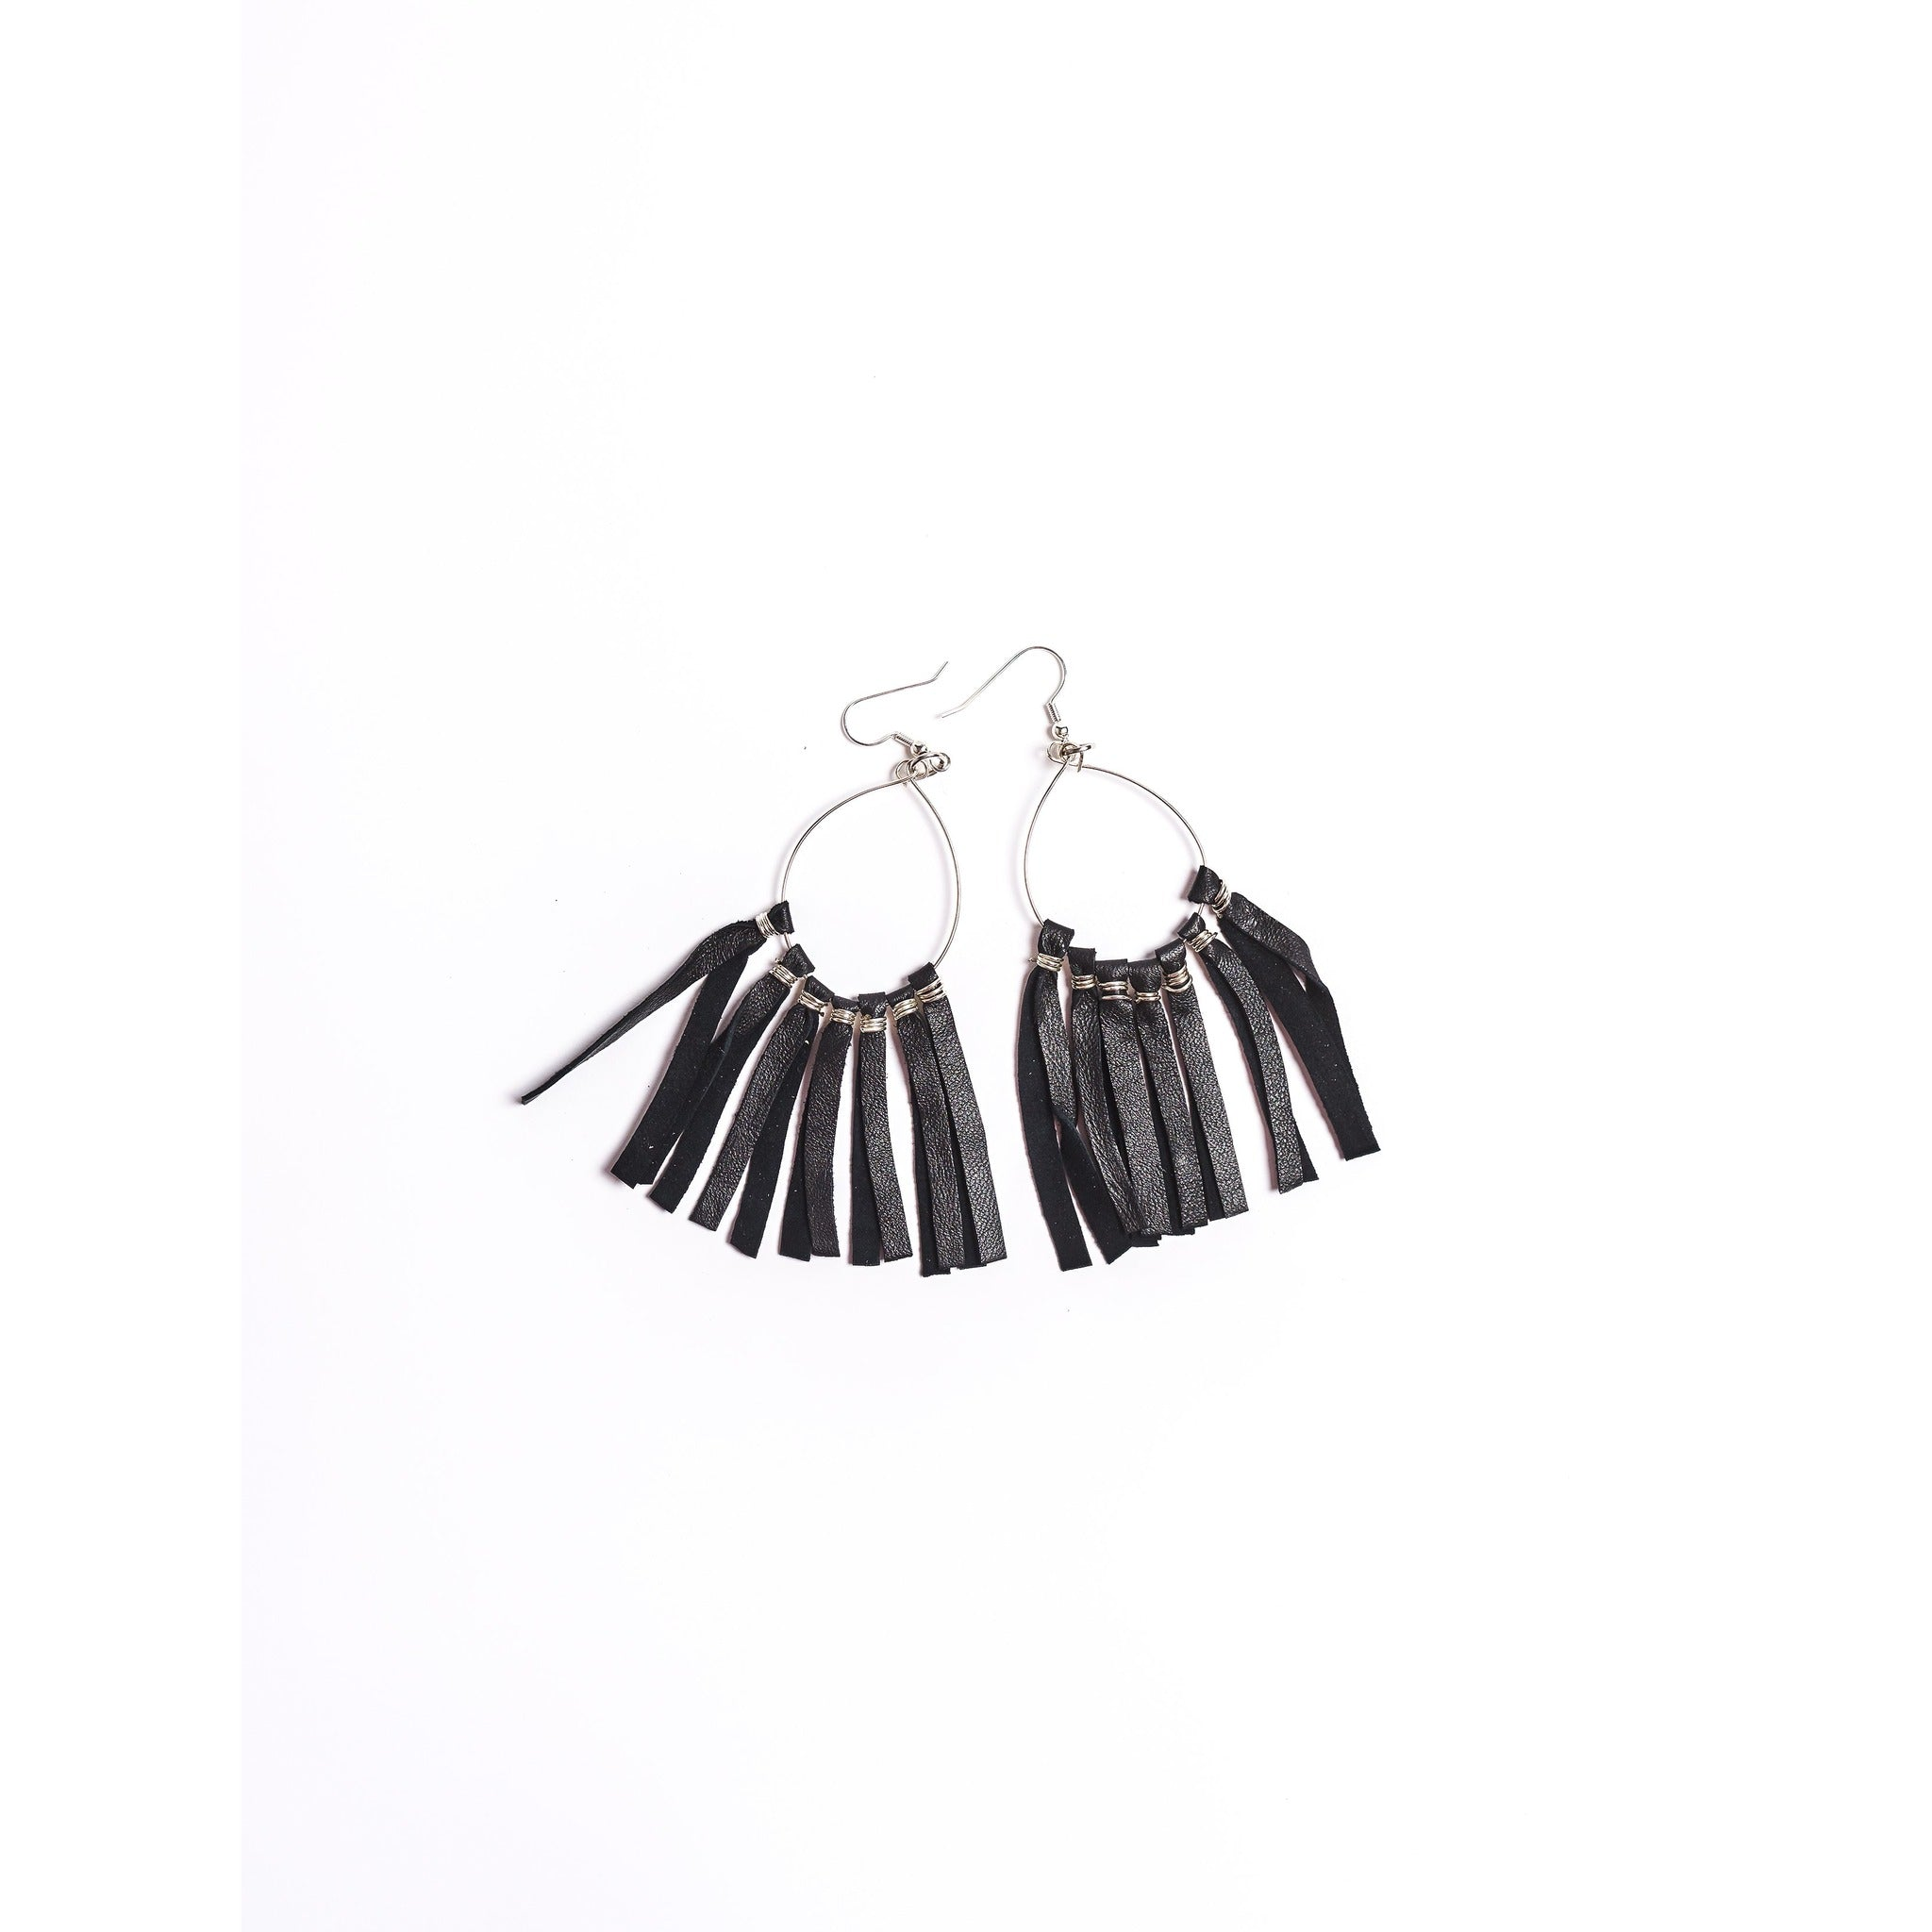 Fringe Earrings - Shop Collective Goods